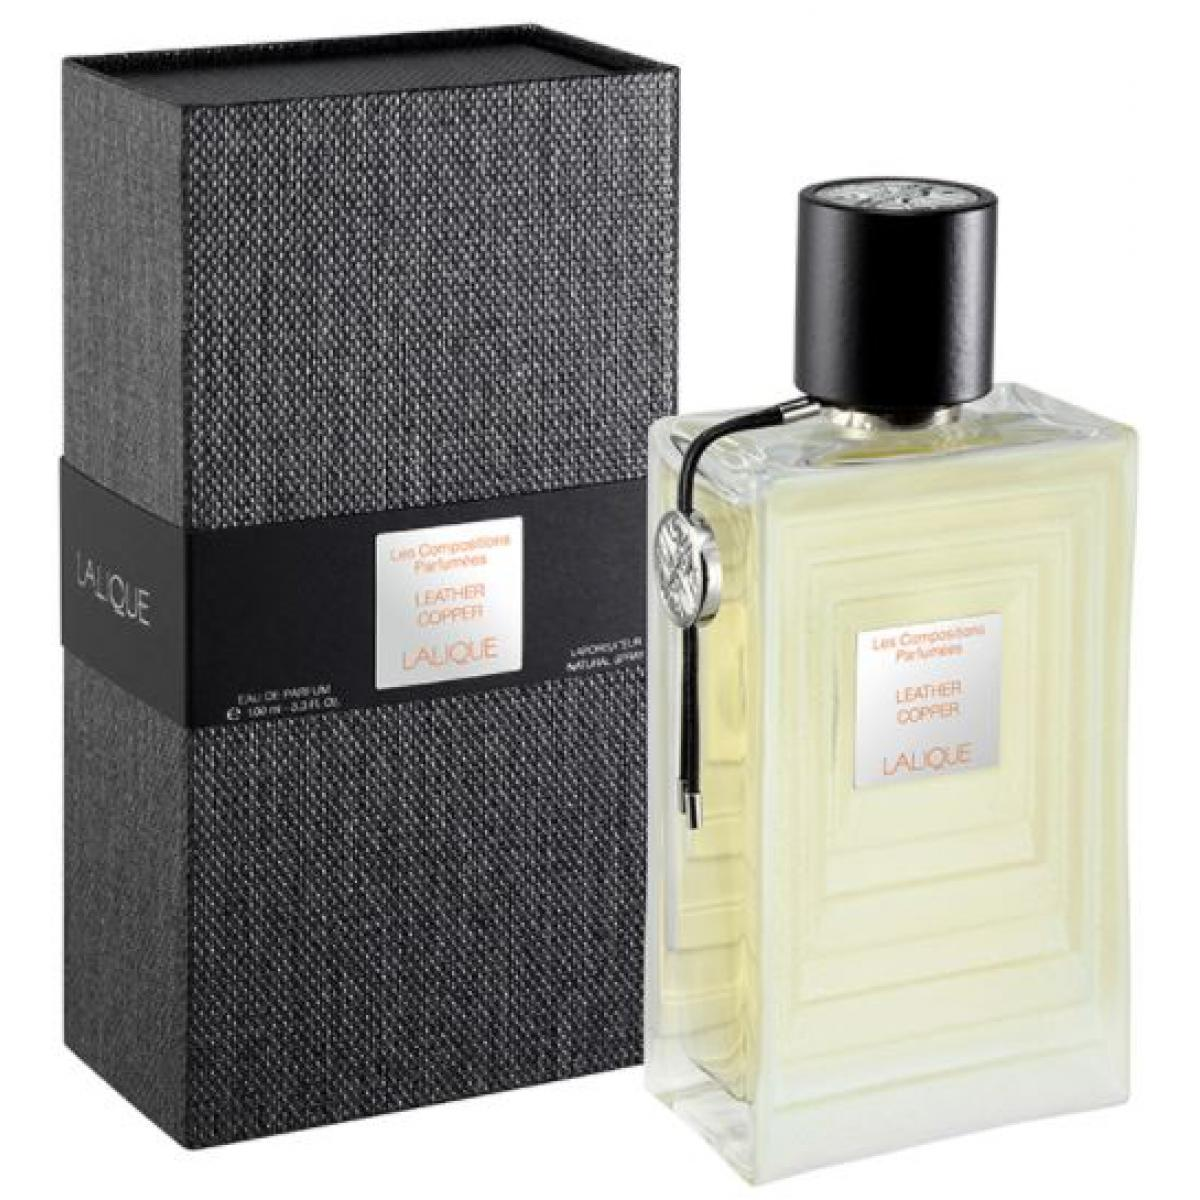 Leather Copper - Eau de Parfum Spray